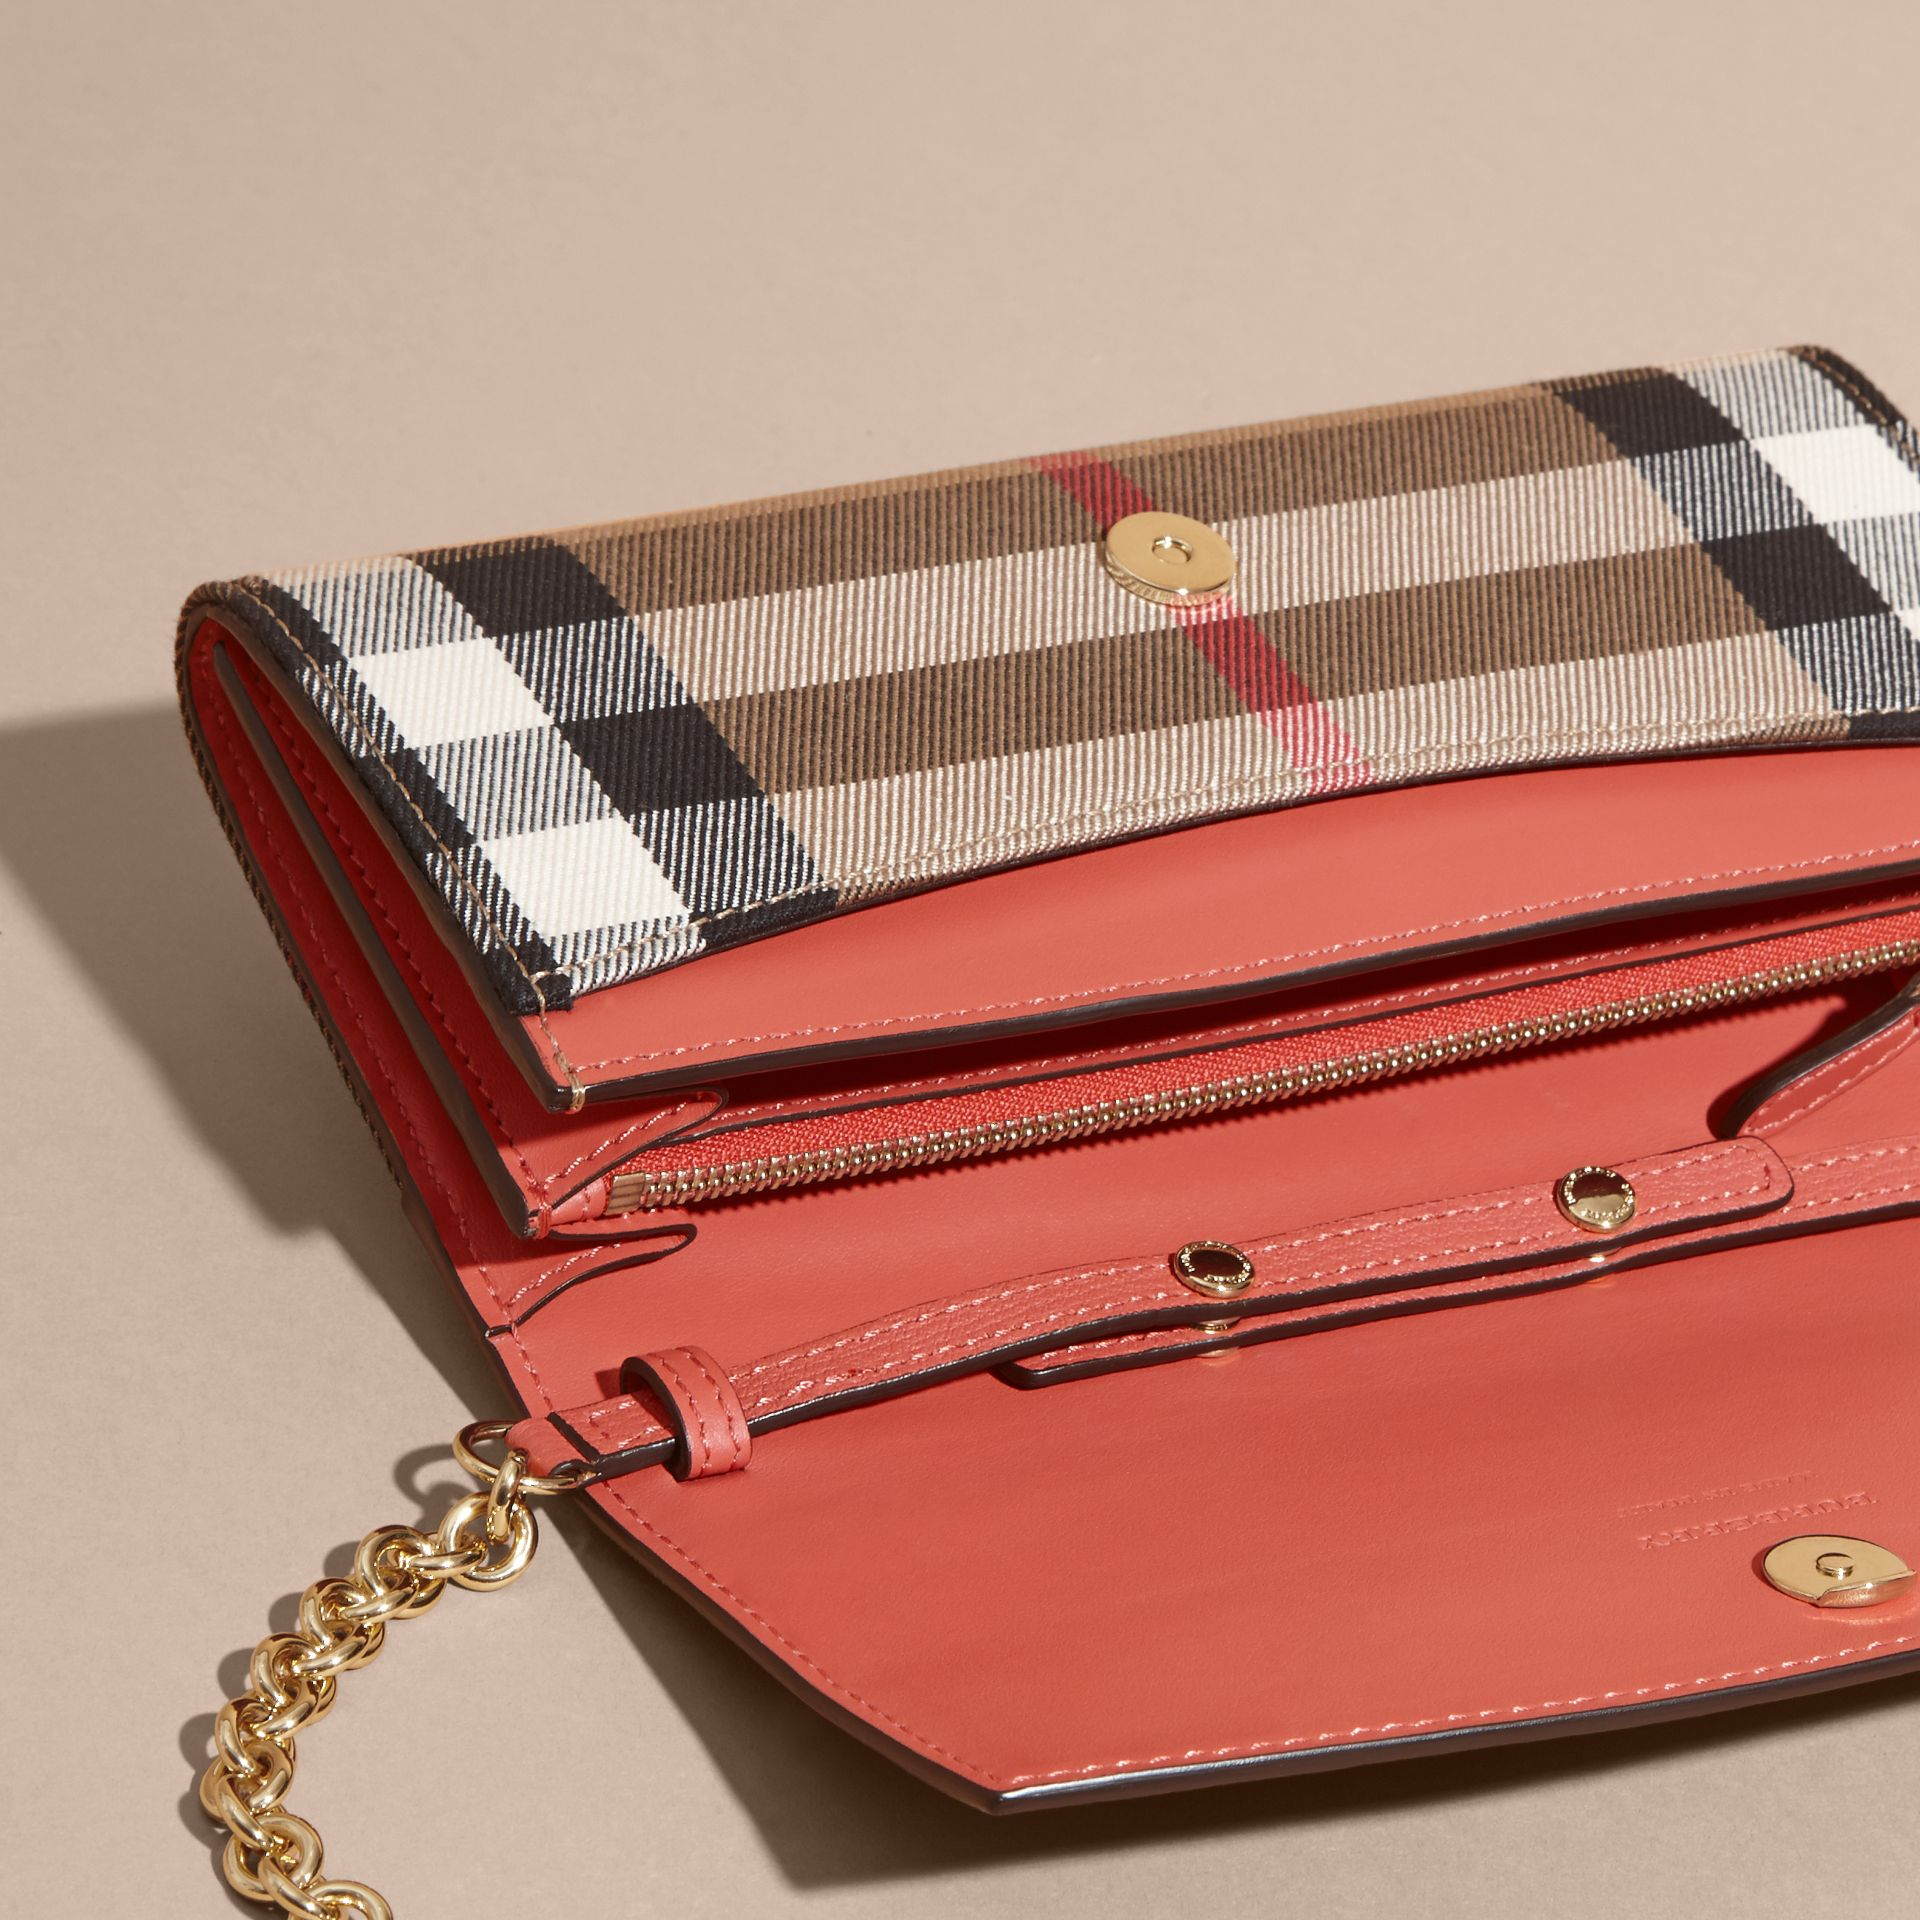 House Check and Leather Wallet with Chain in Cinnamon Red - Women | Burberry United Kingdom - gallery image 5